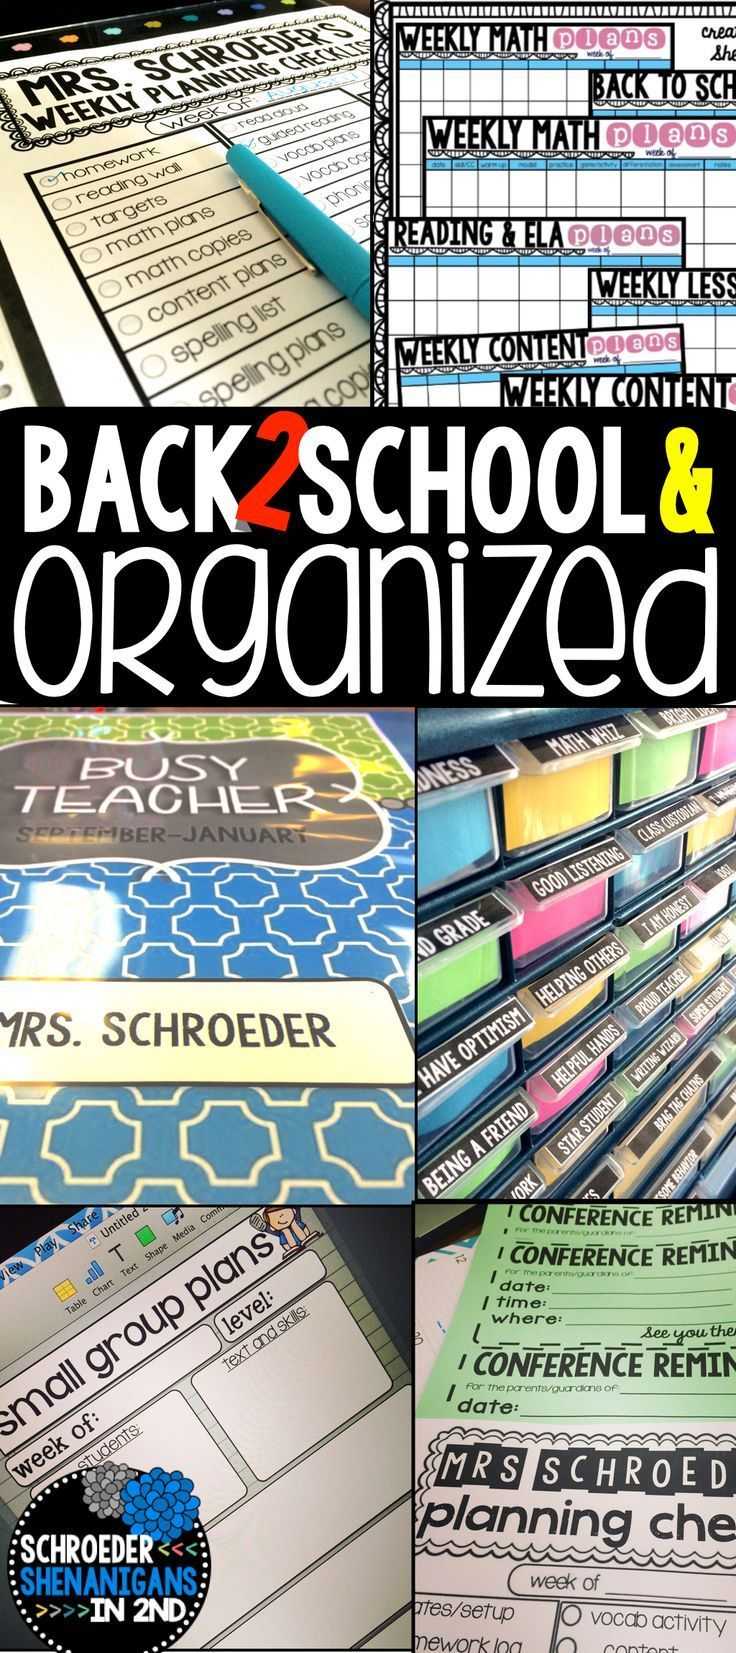 Get organized for the new school year with editable lesson plans, editable check lists, small group planning sheets, labels, and more!